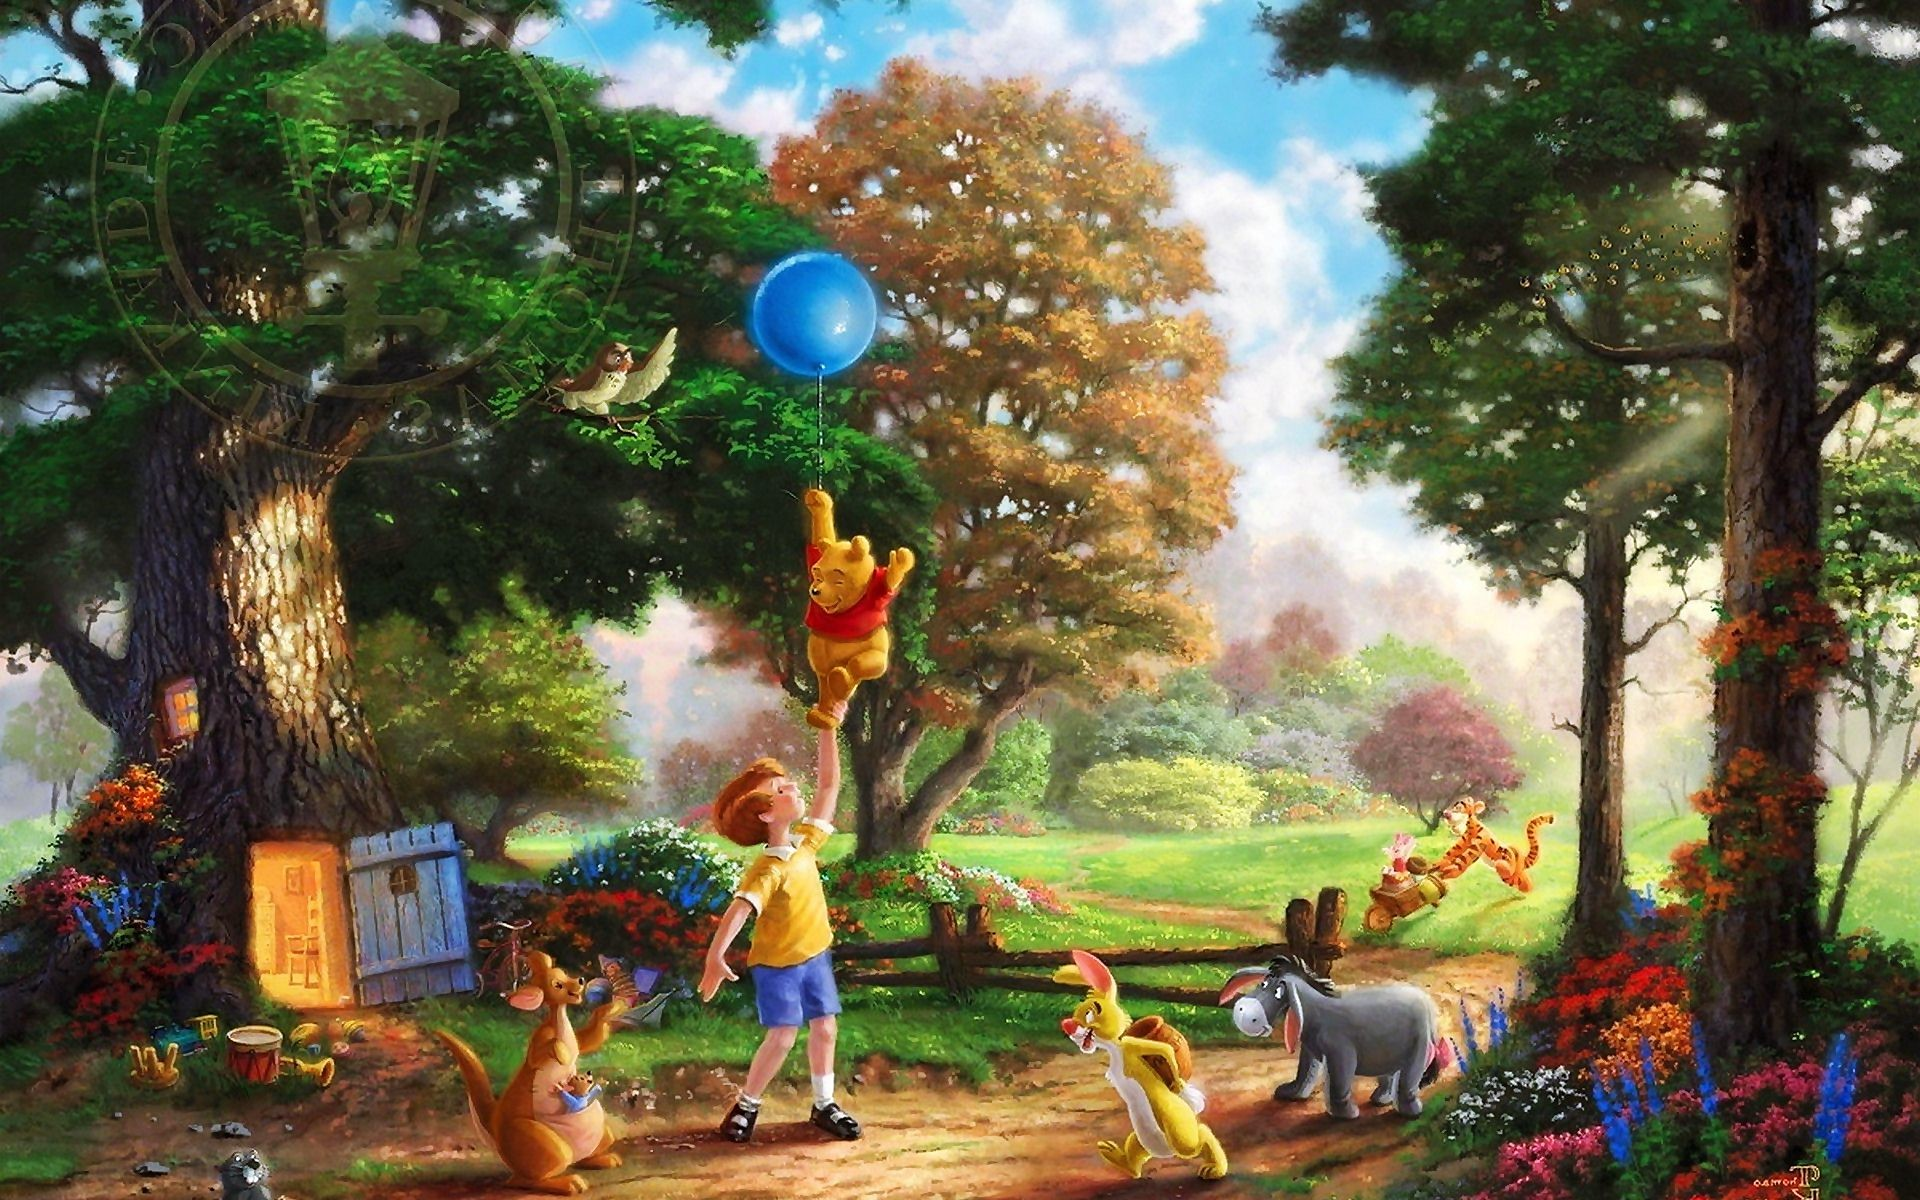 Winnie The Pooh Thomas Kinkade Wallpaper,Images,Pictures,Photos,HD  Wallpapers